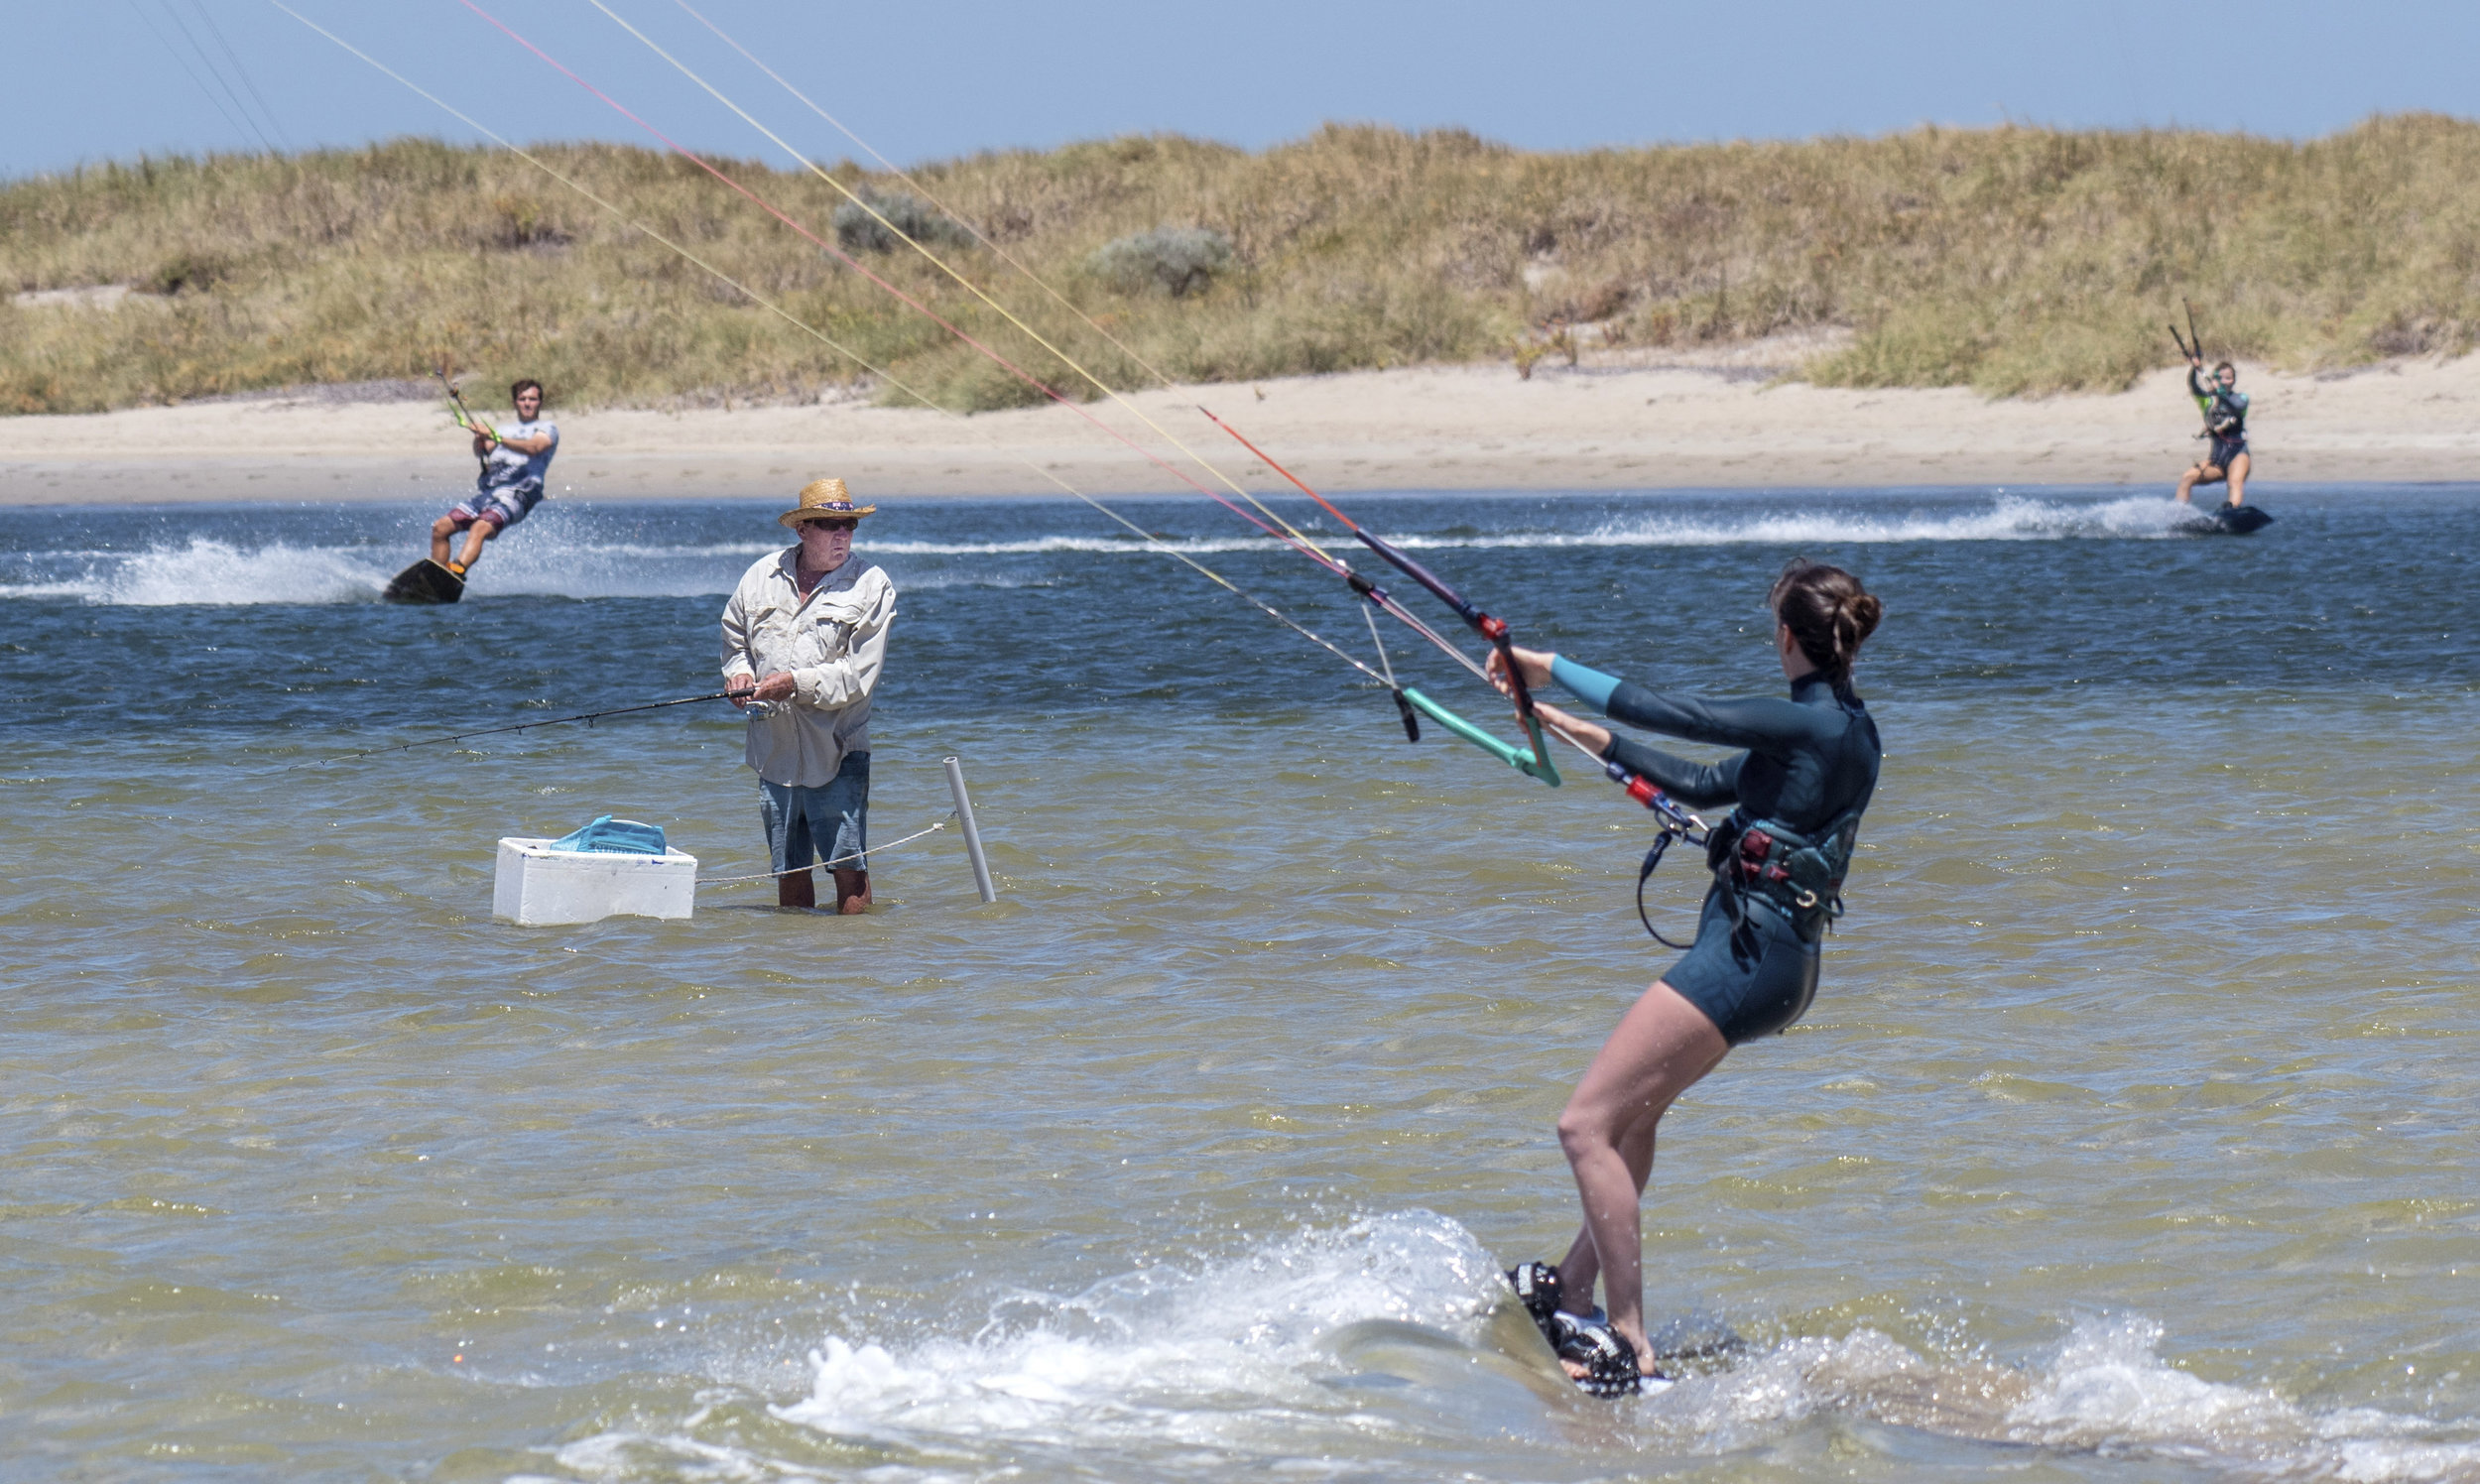 Kite Fisherman - Sports  Feature.jpg